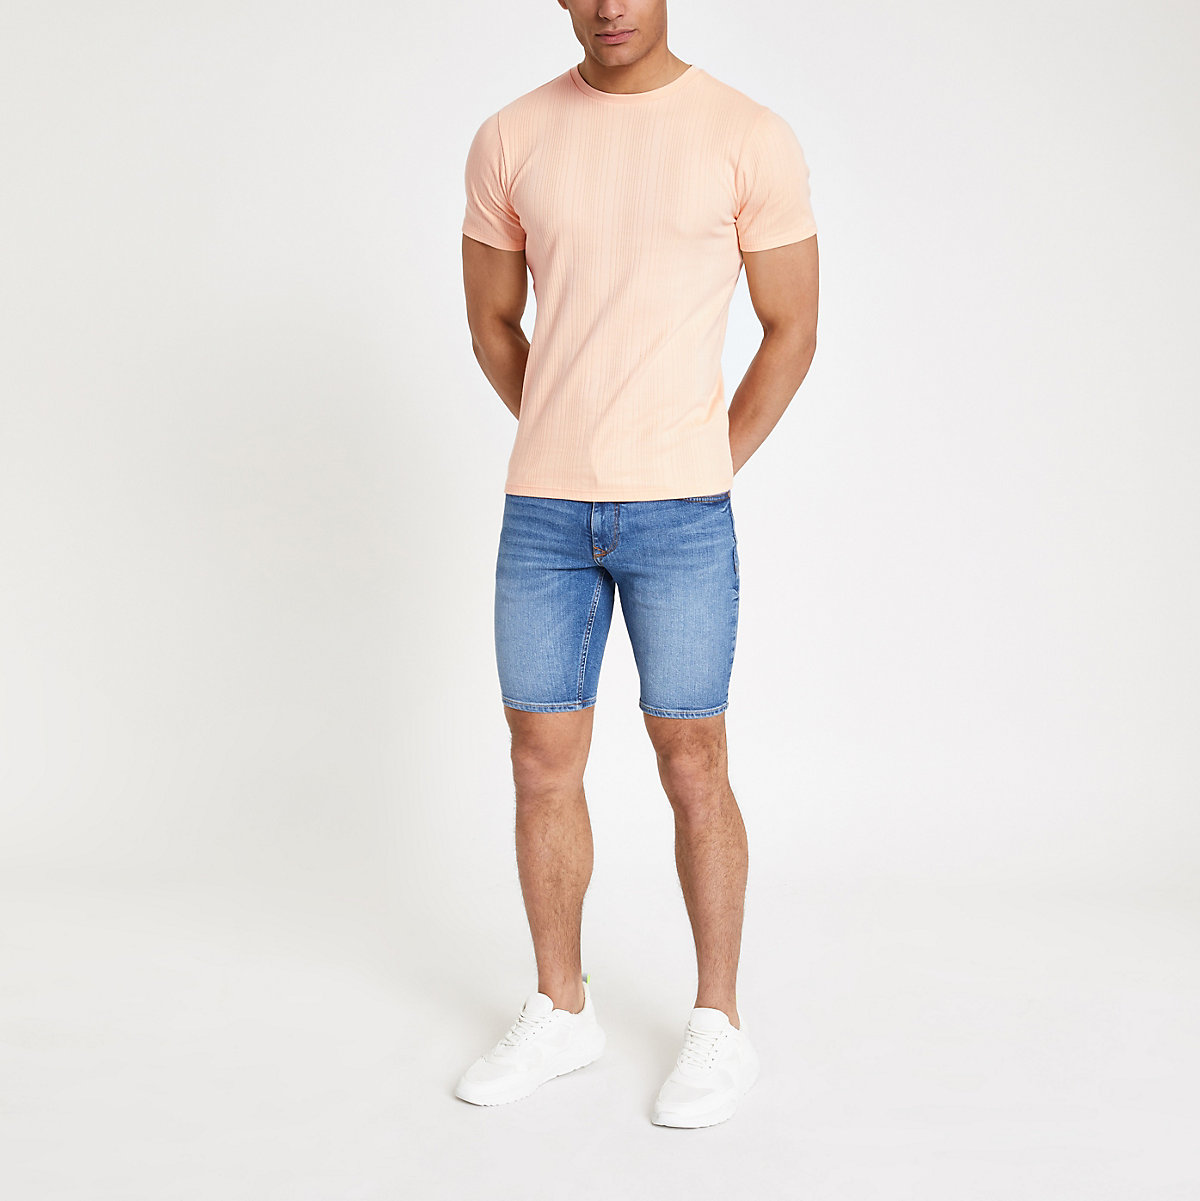 Orange ribbed muscle fit T-shirt